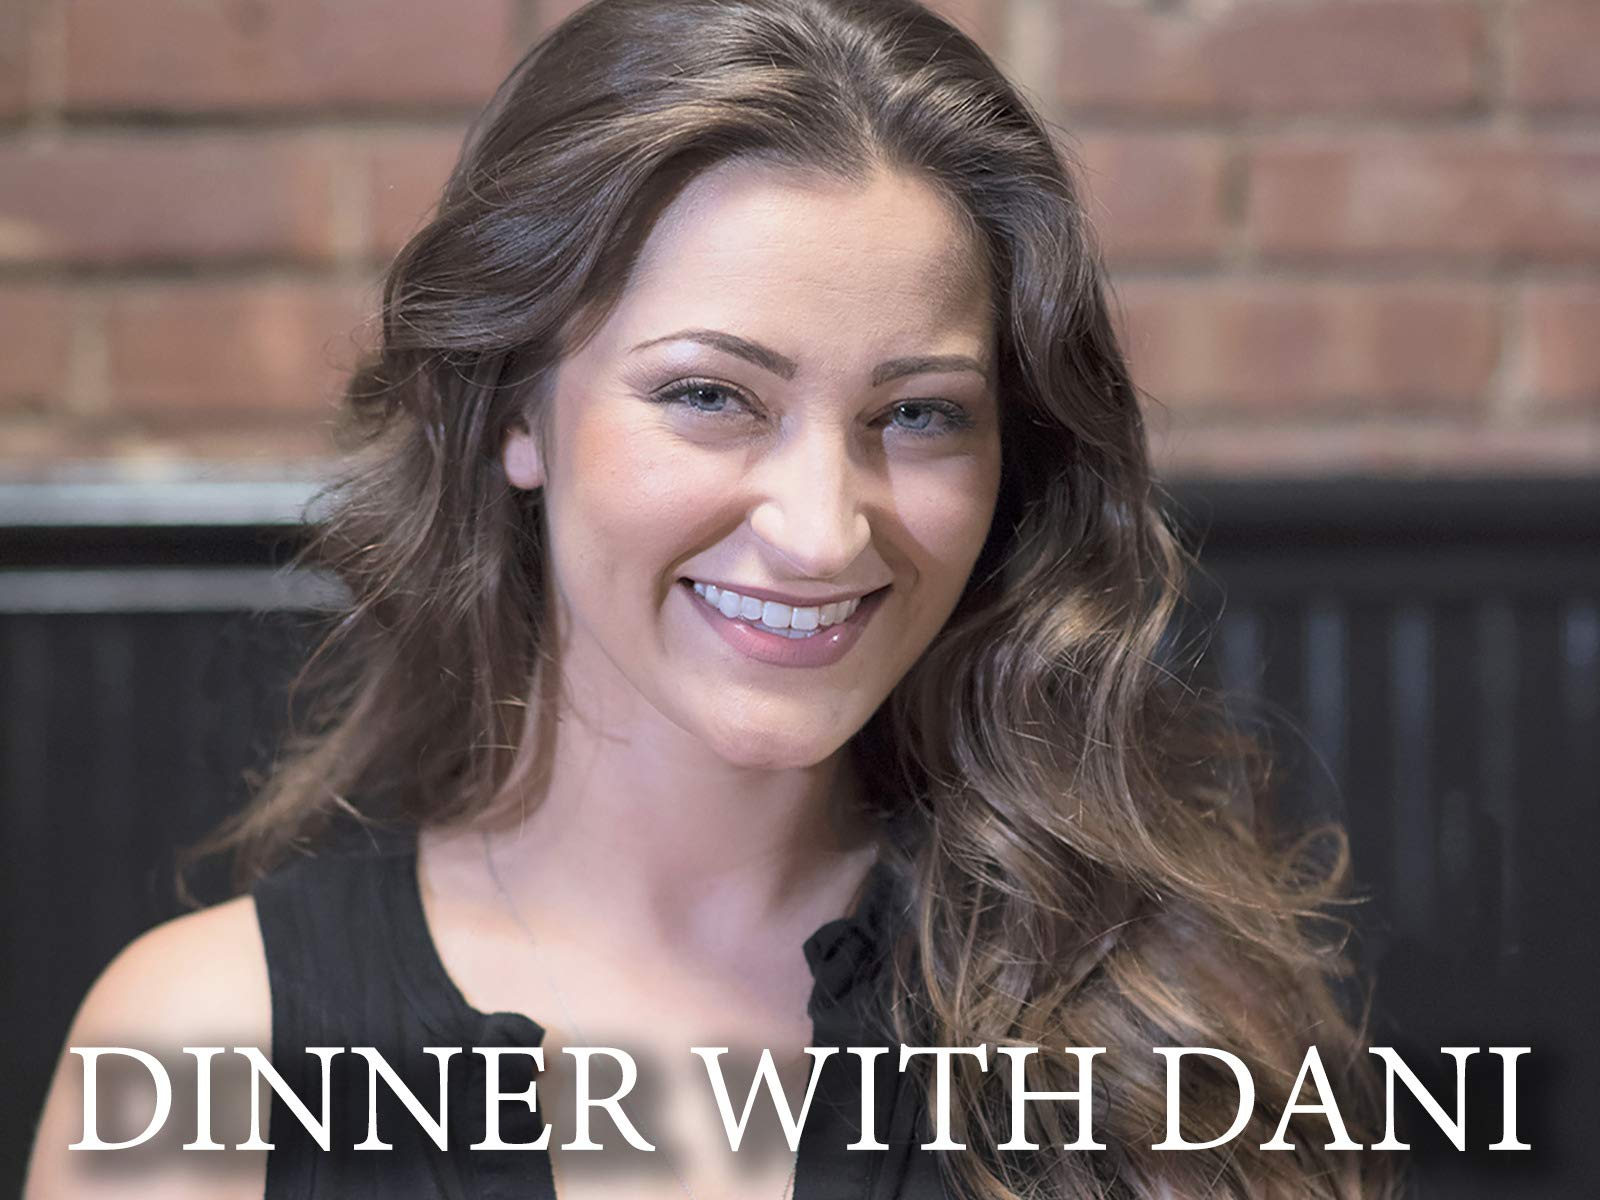 Amazoncouk Watch Dinner With Dani Prime Video 1600x1200